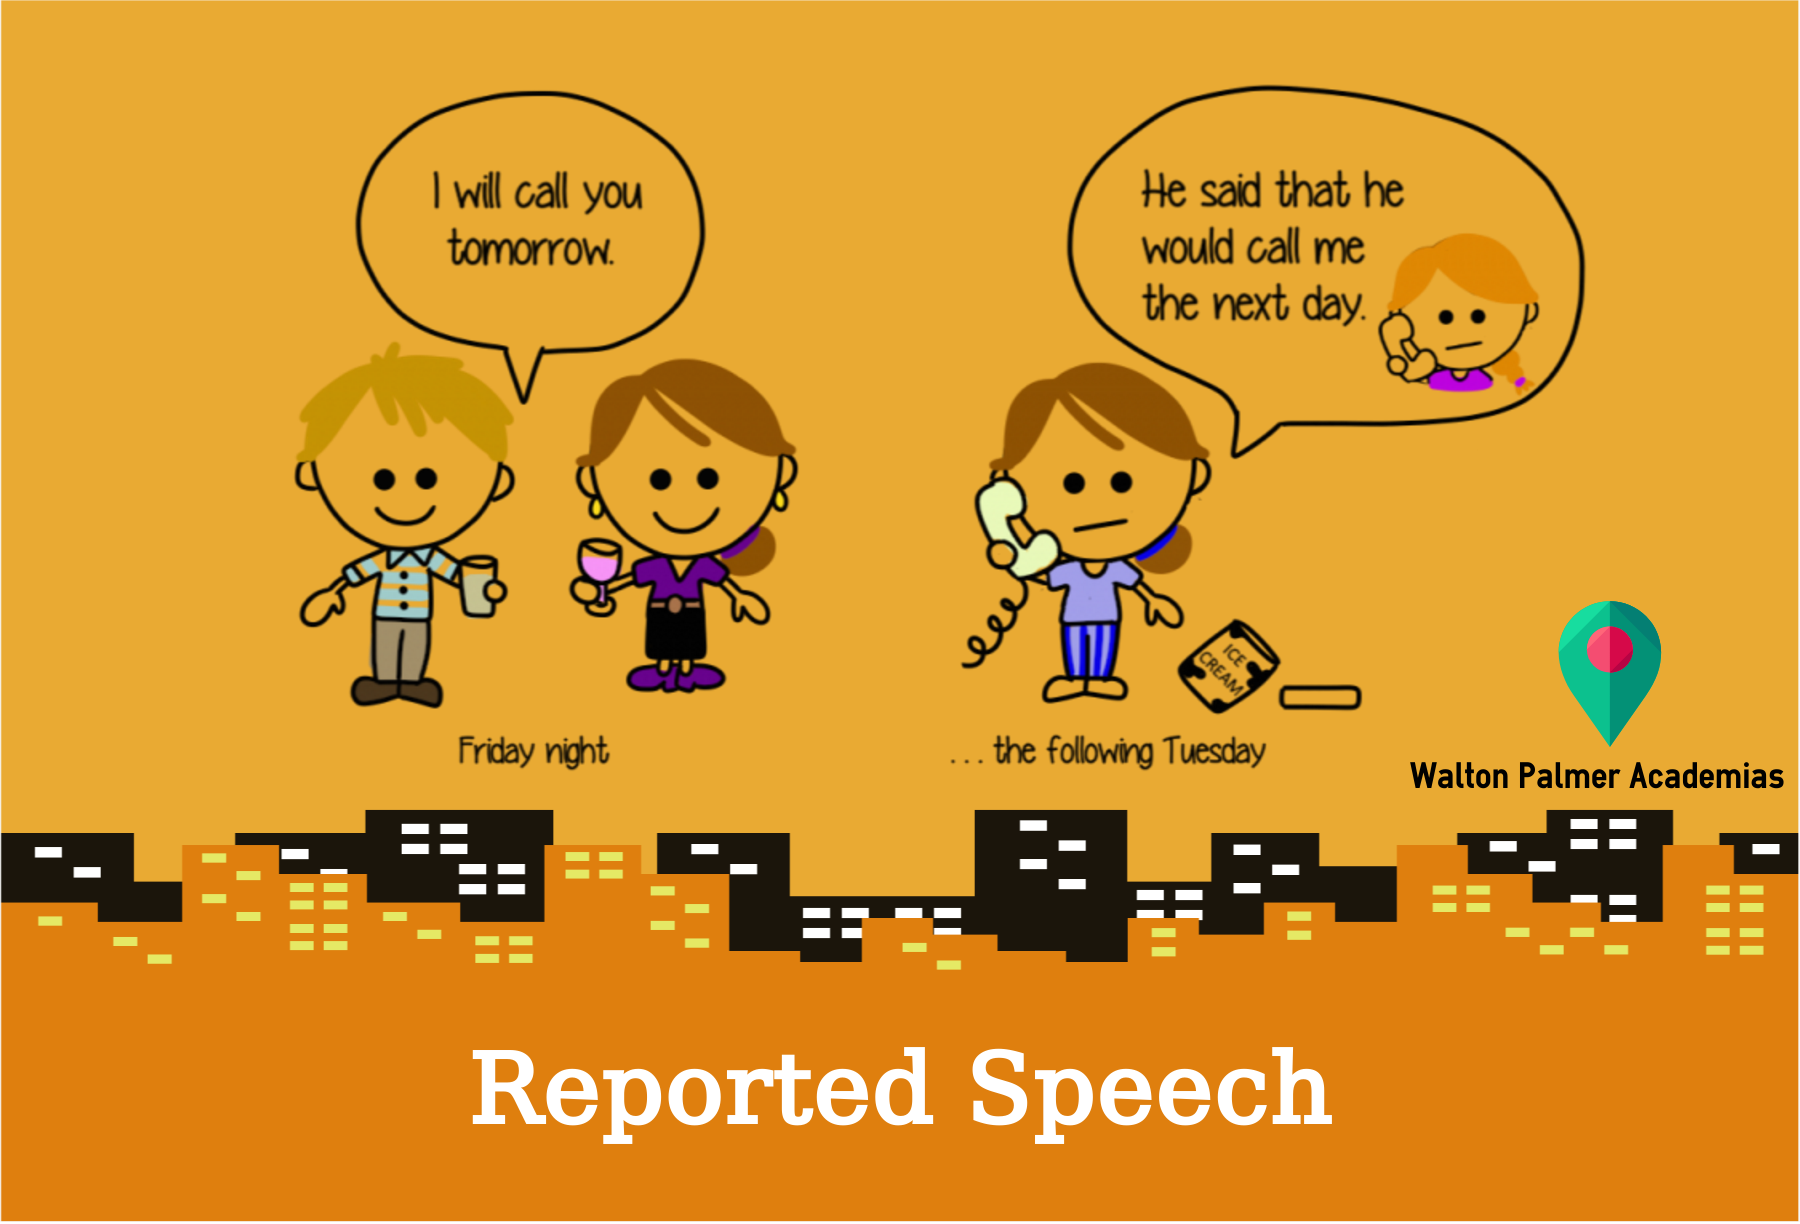 Reported Speech Walton Palmer